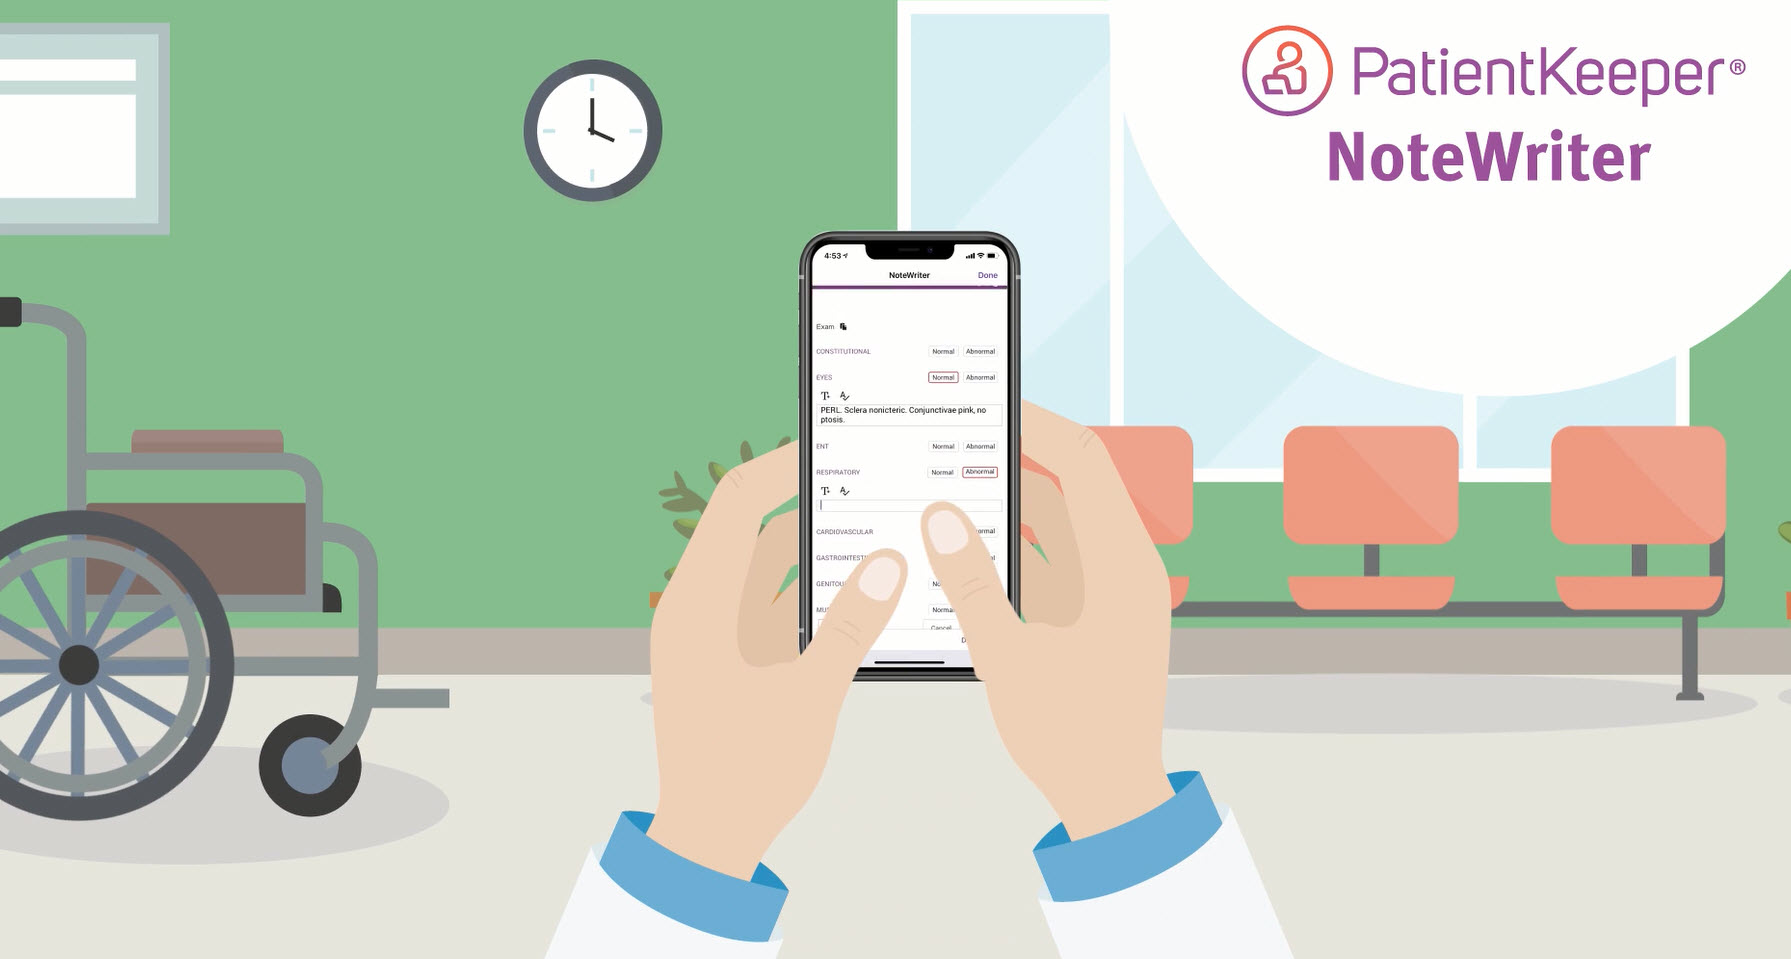 Clinical Communications Suite can be enhanced with PatientKeeper's provider documentation app, NoteWriter